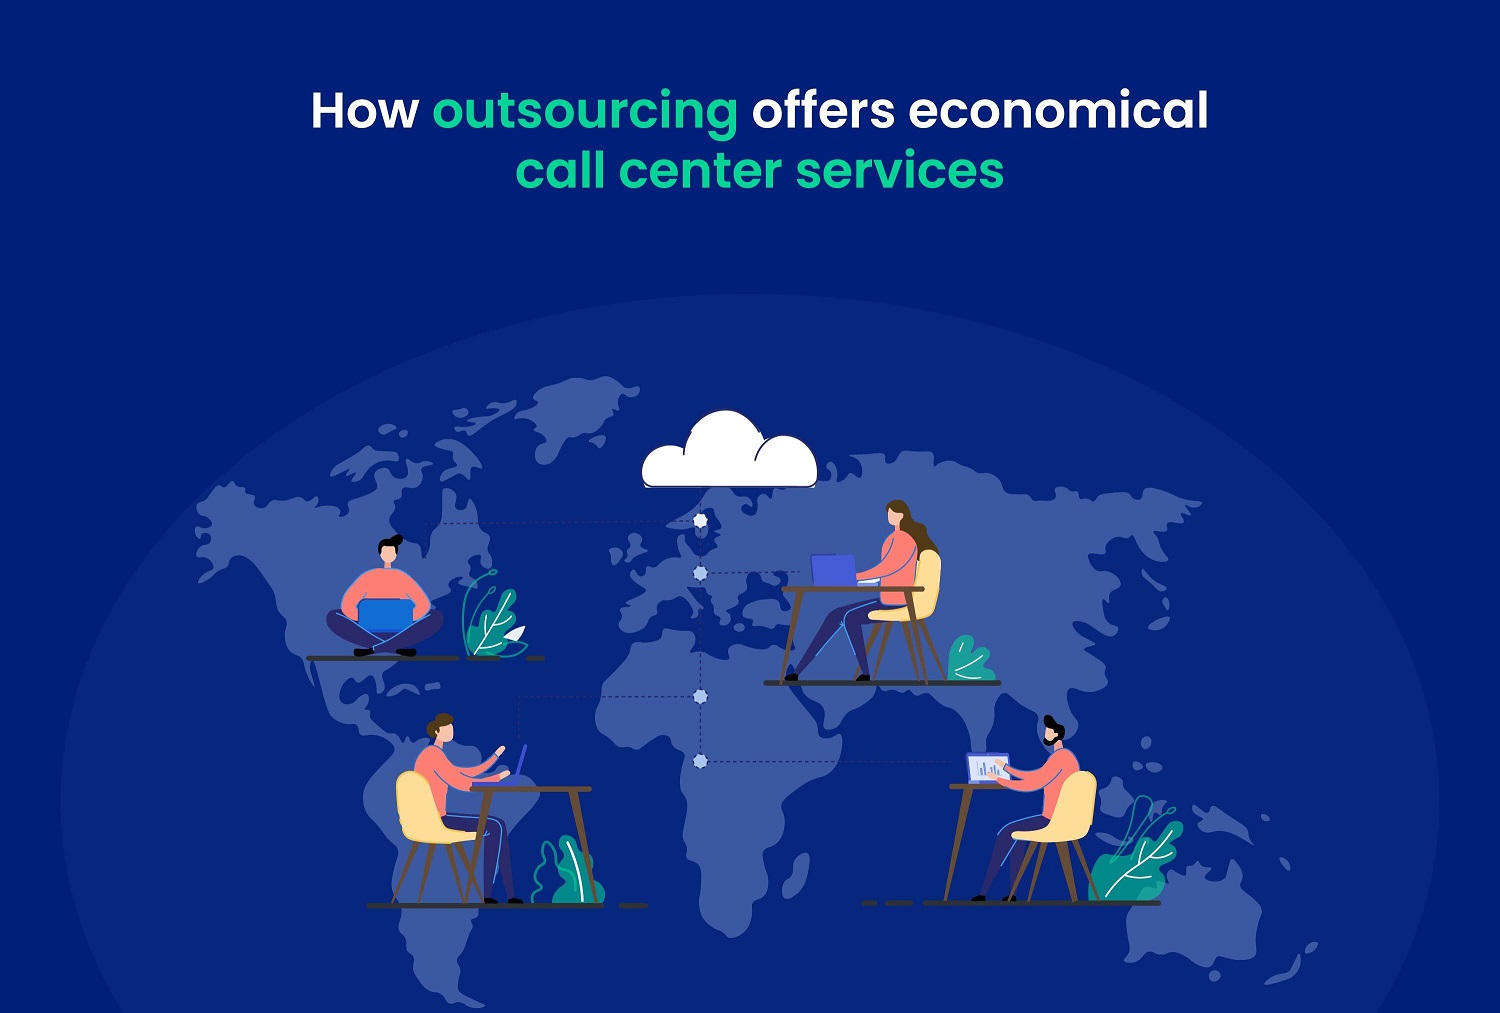 How outsourcing offers economical call center services